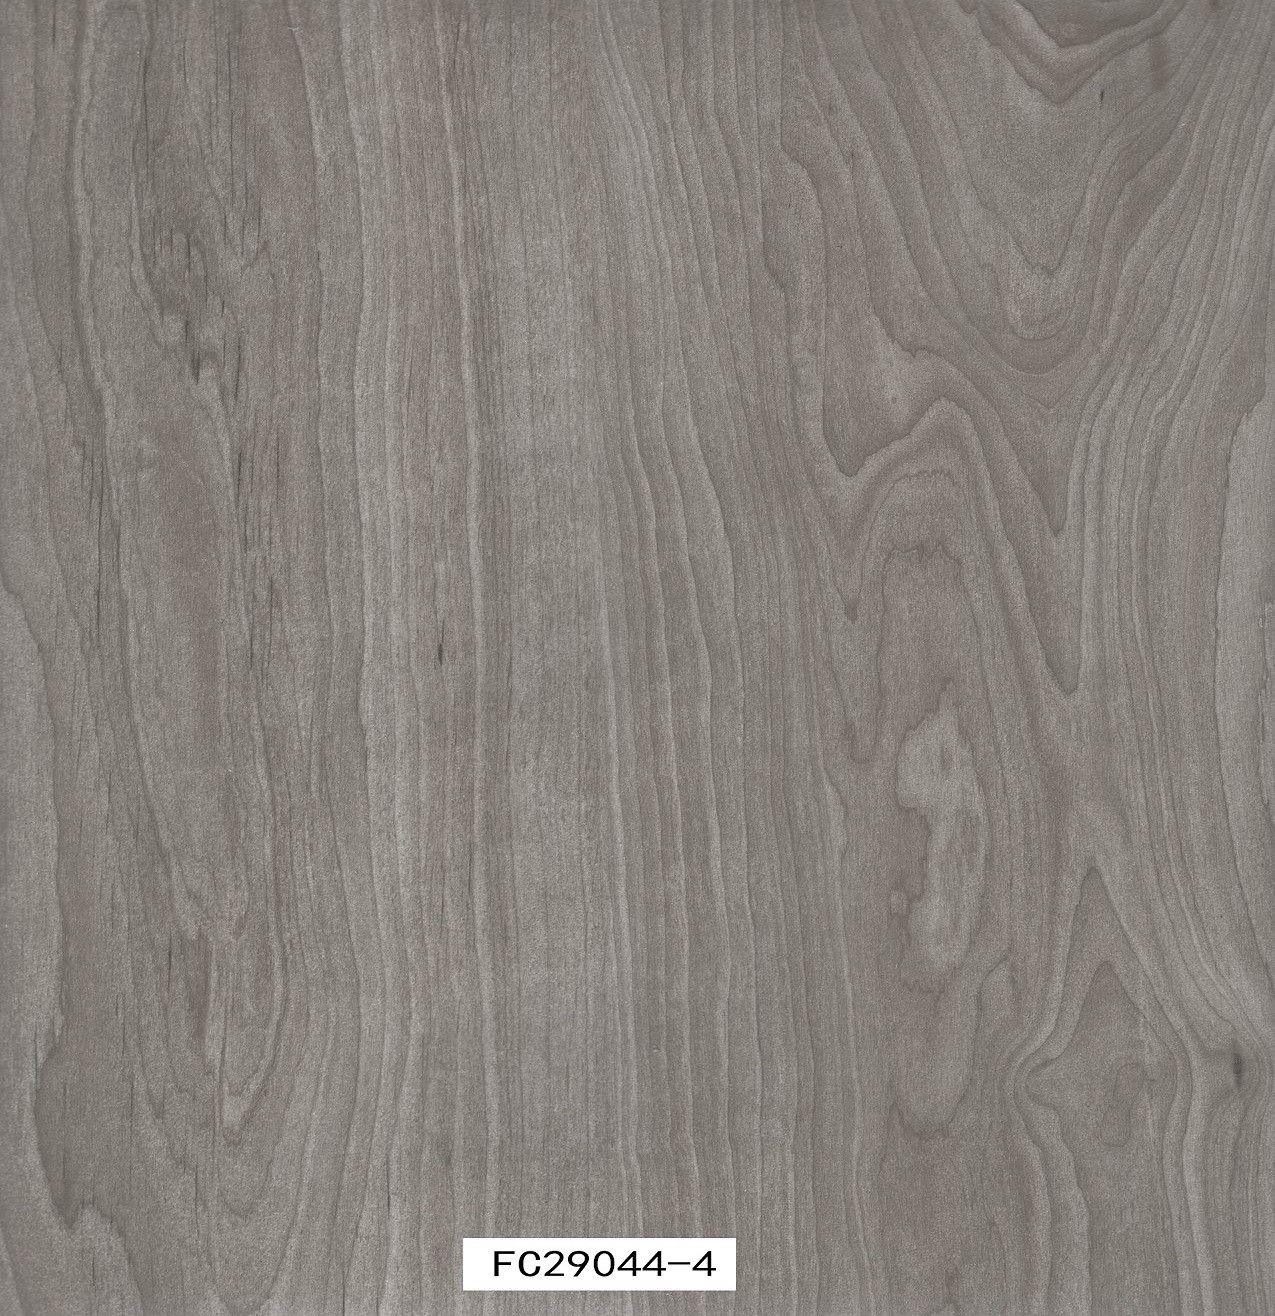 Anti Slip Commercial Vinyl Flooring Wood Texture Pvc